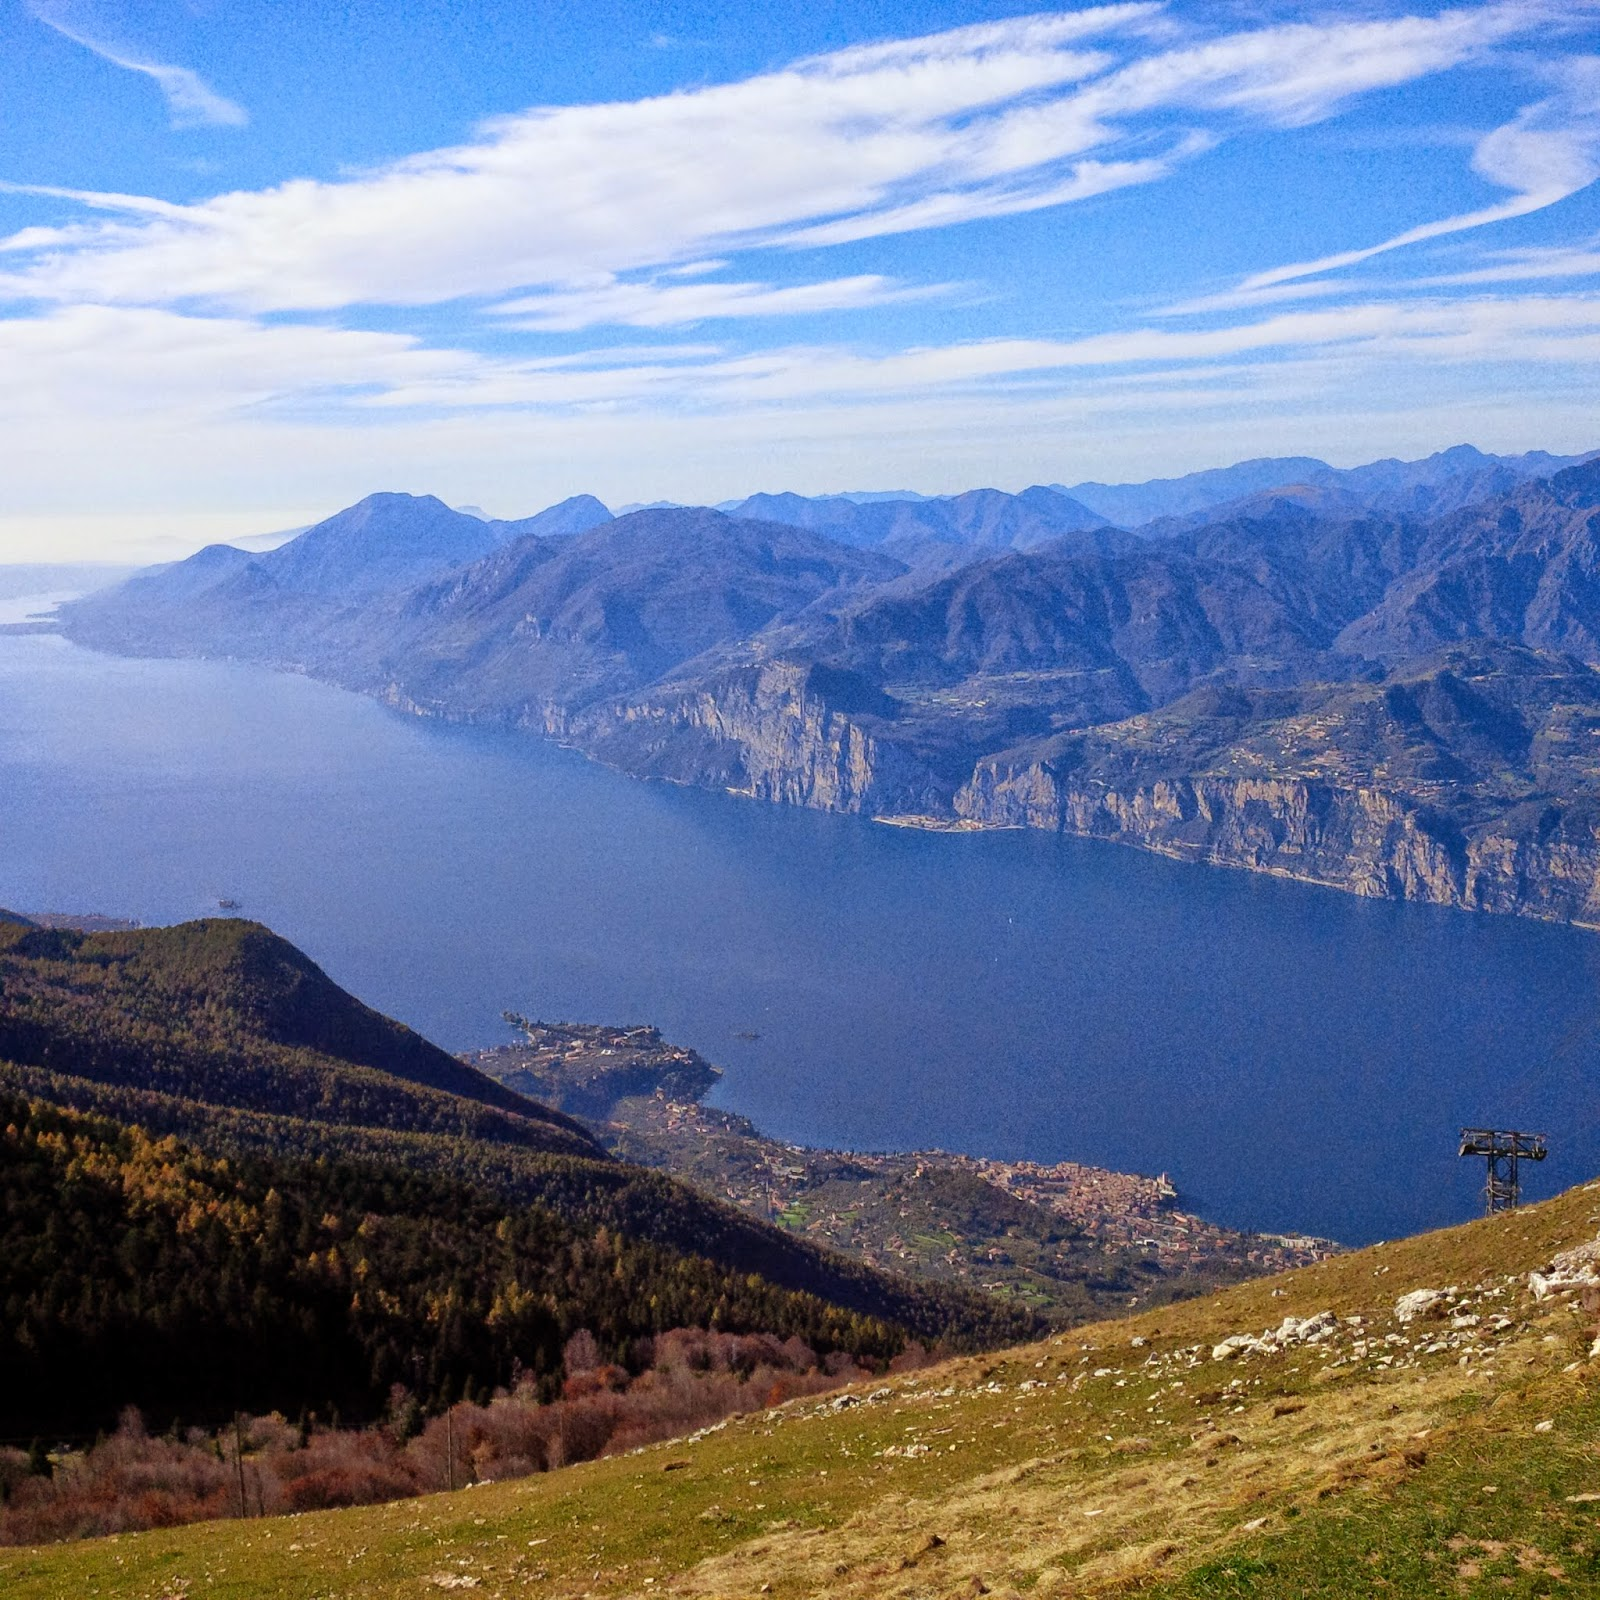 Lake Garda seen from Mount Baldo at 1760 m altitude